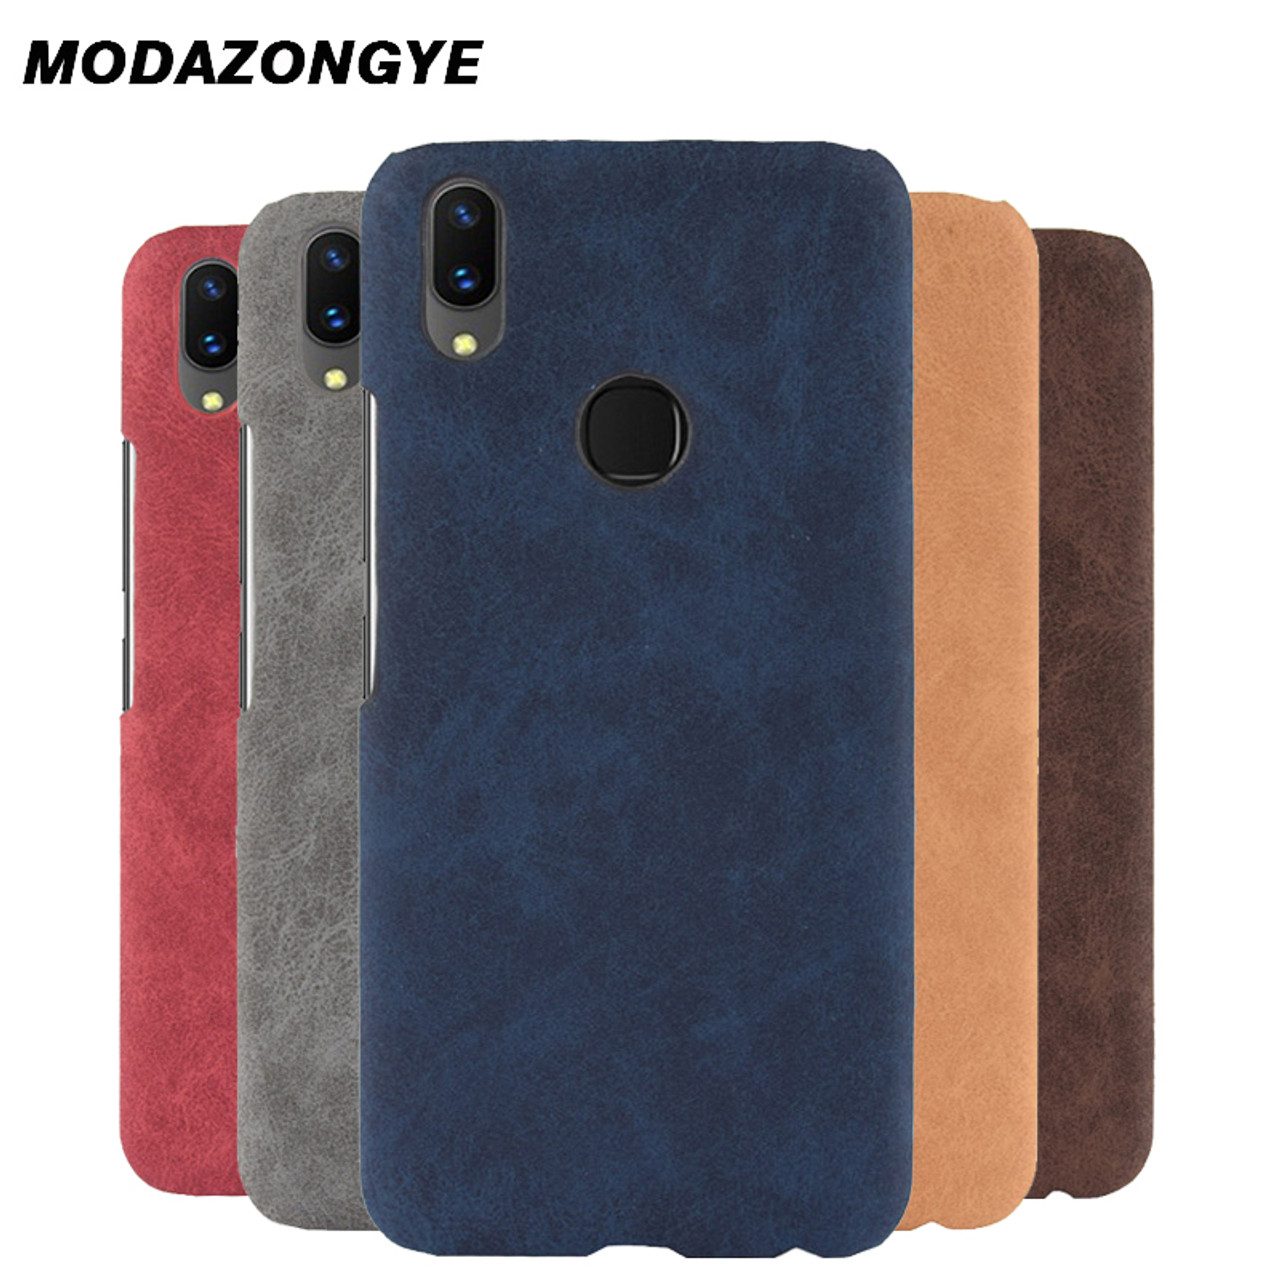 newest f8073 920b1 For VIVO V9 Case VIVO V9 Case Hard Back Cover PU Leather Phone Case For  VIVO V9 YOUTH IN 1727 F1303 Case Protective Cover 6.3